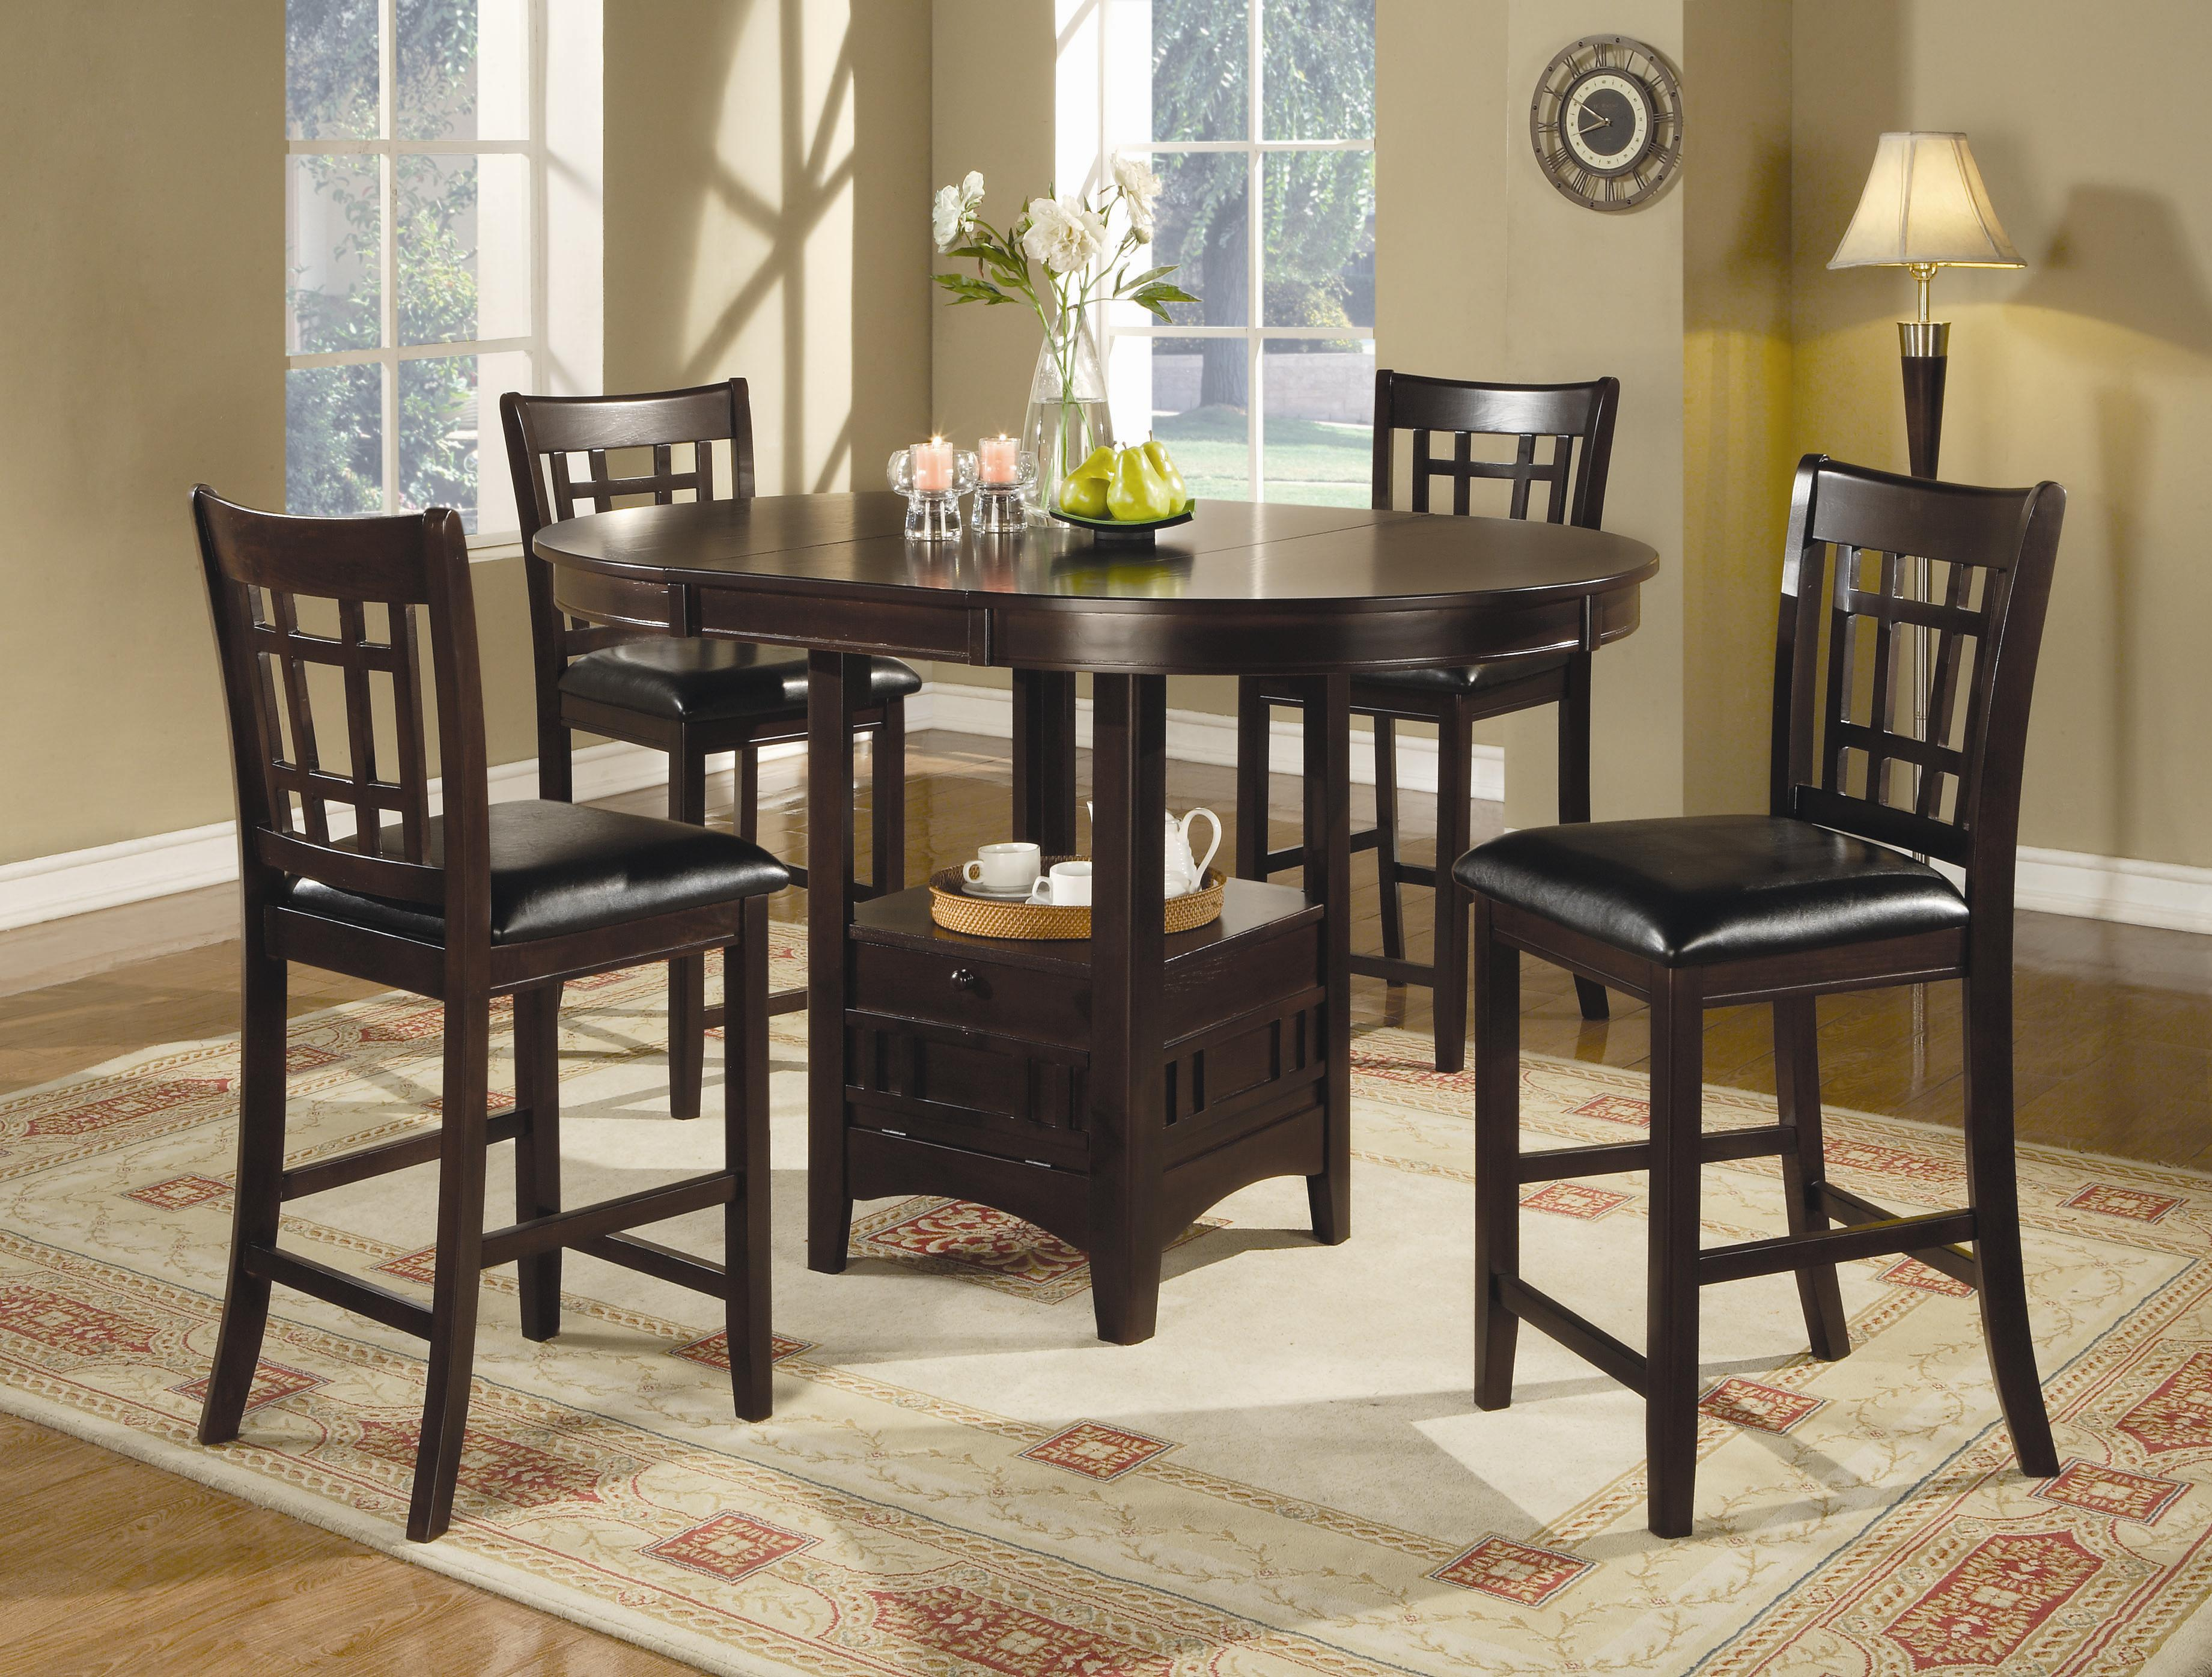 Bar Table With Chairs Lavon 5 Piece Counter Table And Chair Set By Coaster